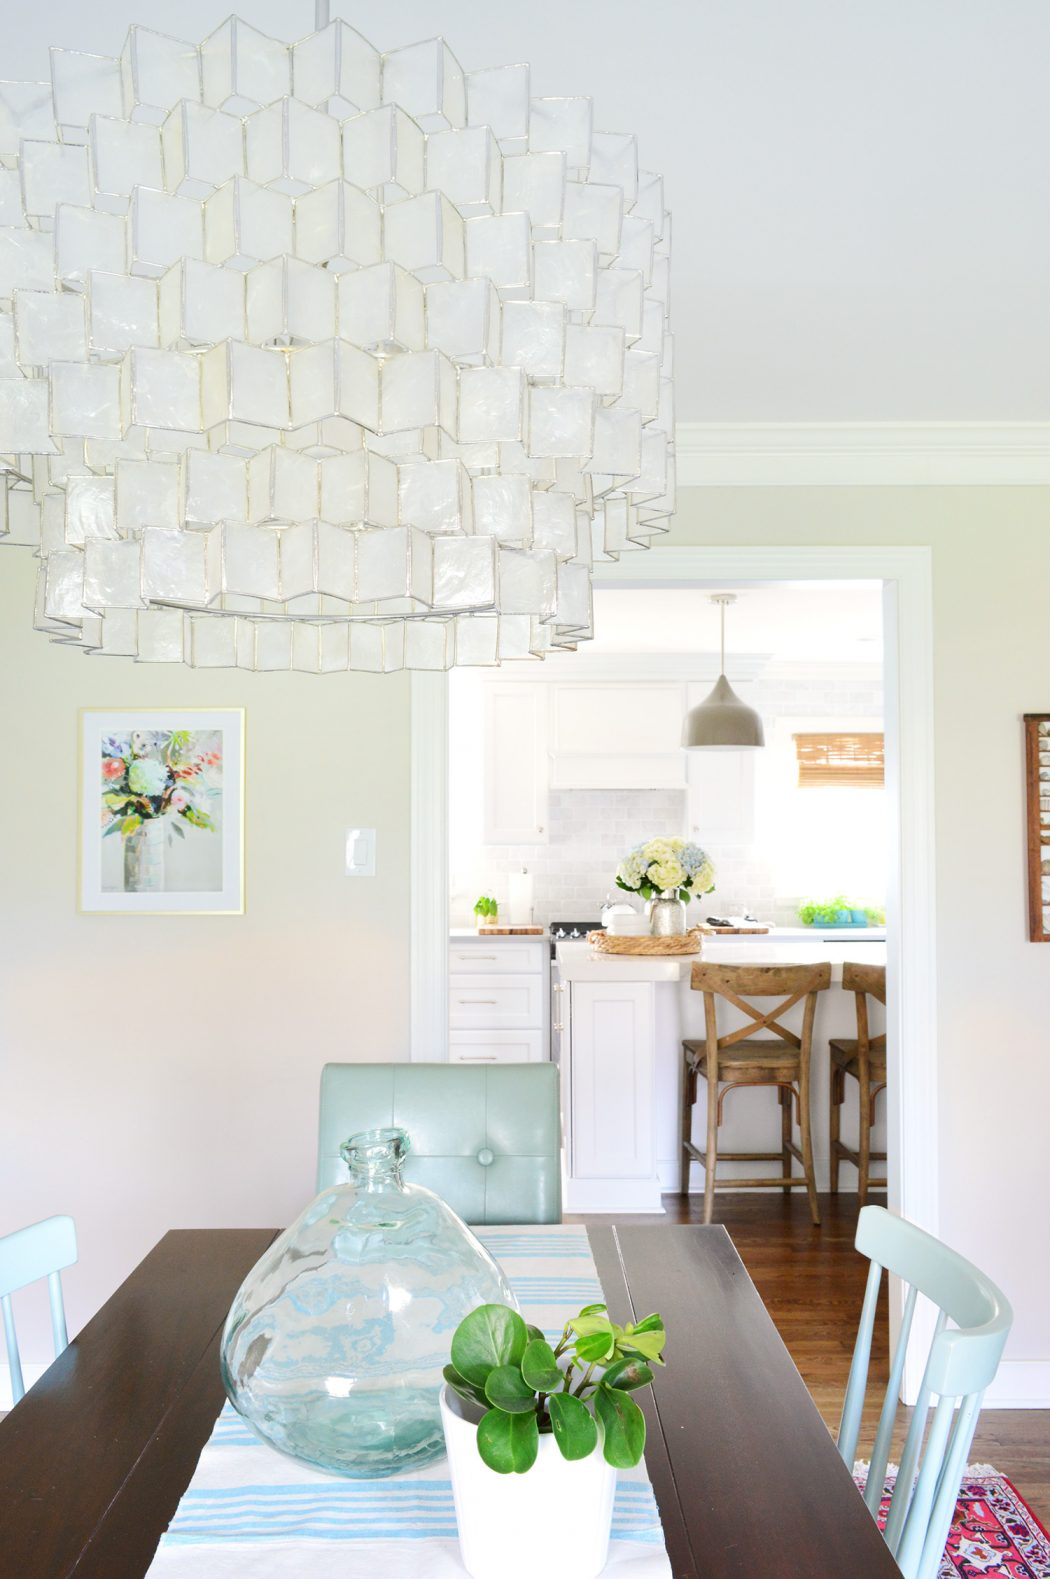 How To Select Light Fixtures That Work Together Without